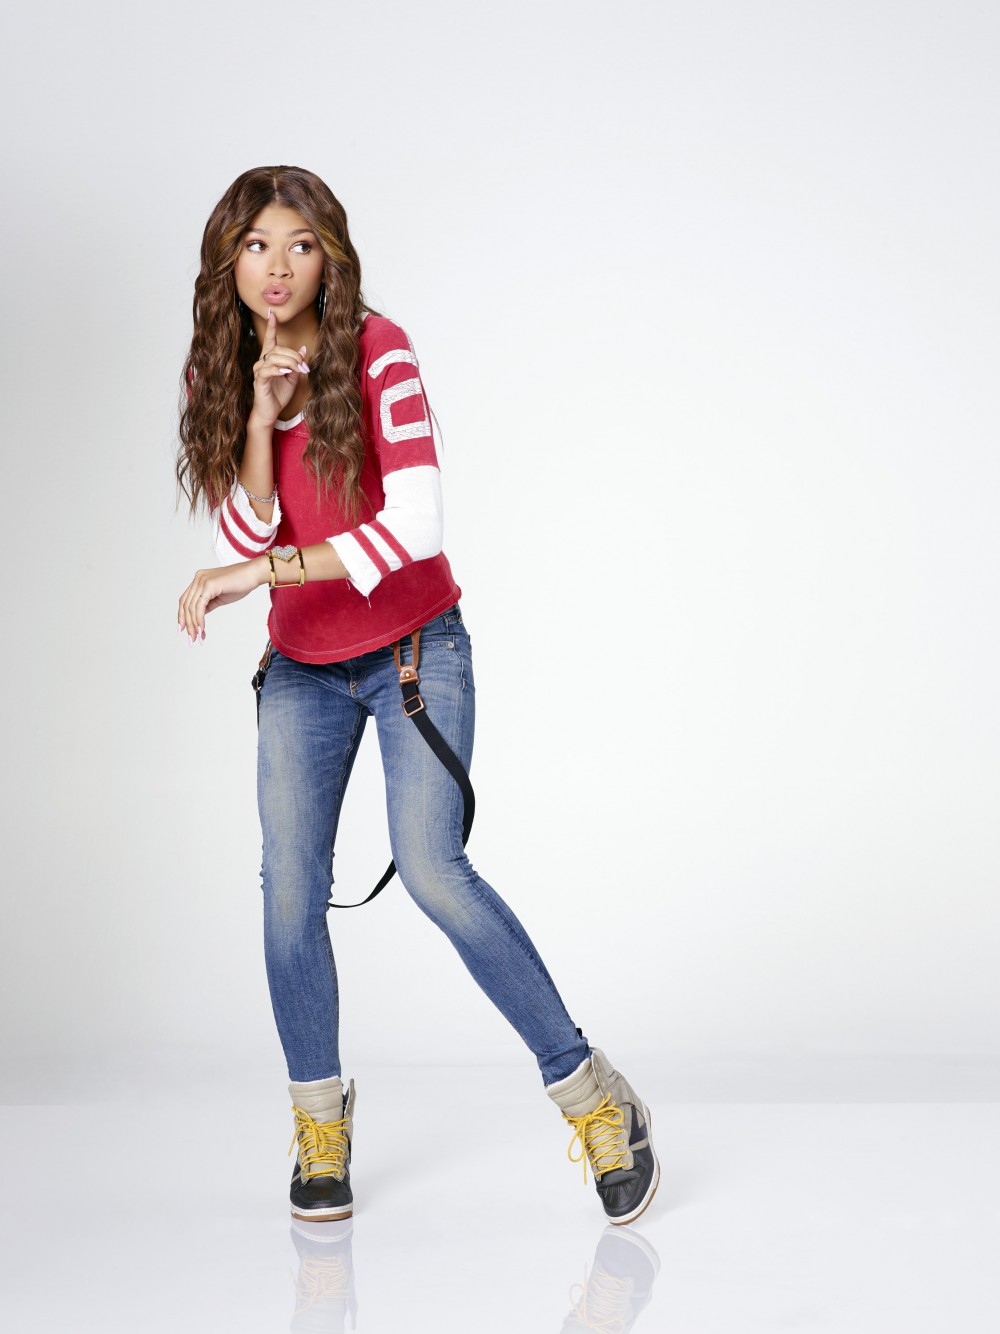 K.C. UNDERCOVER - Disney Channel's